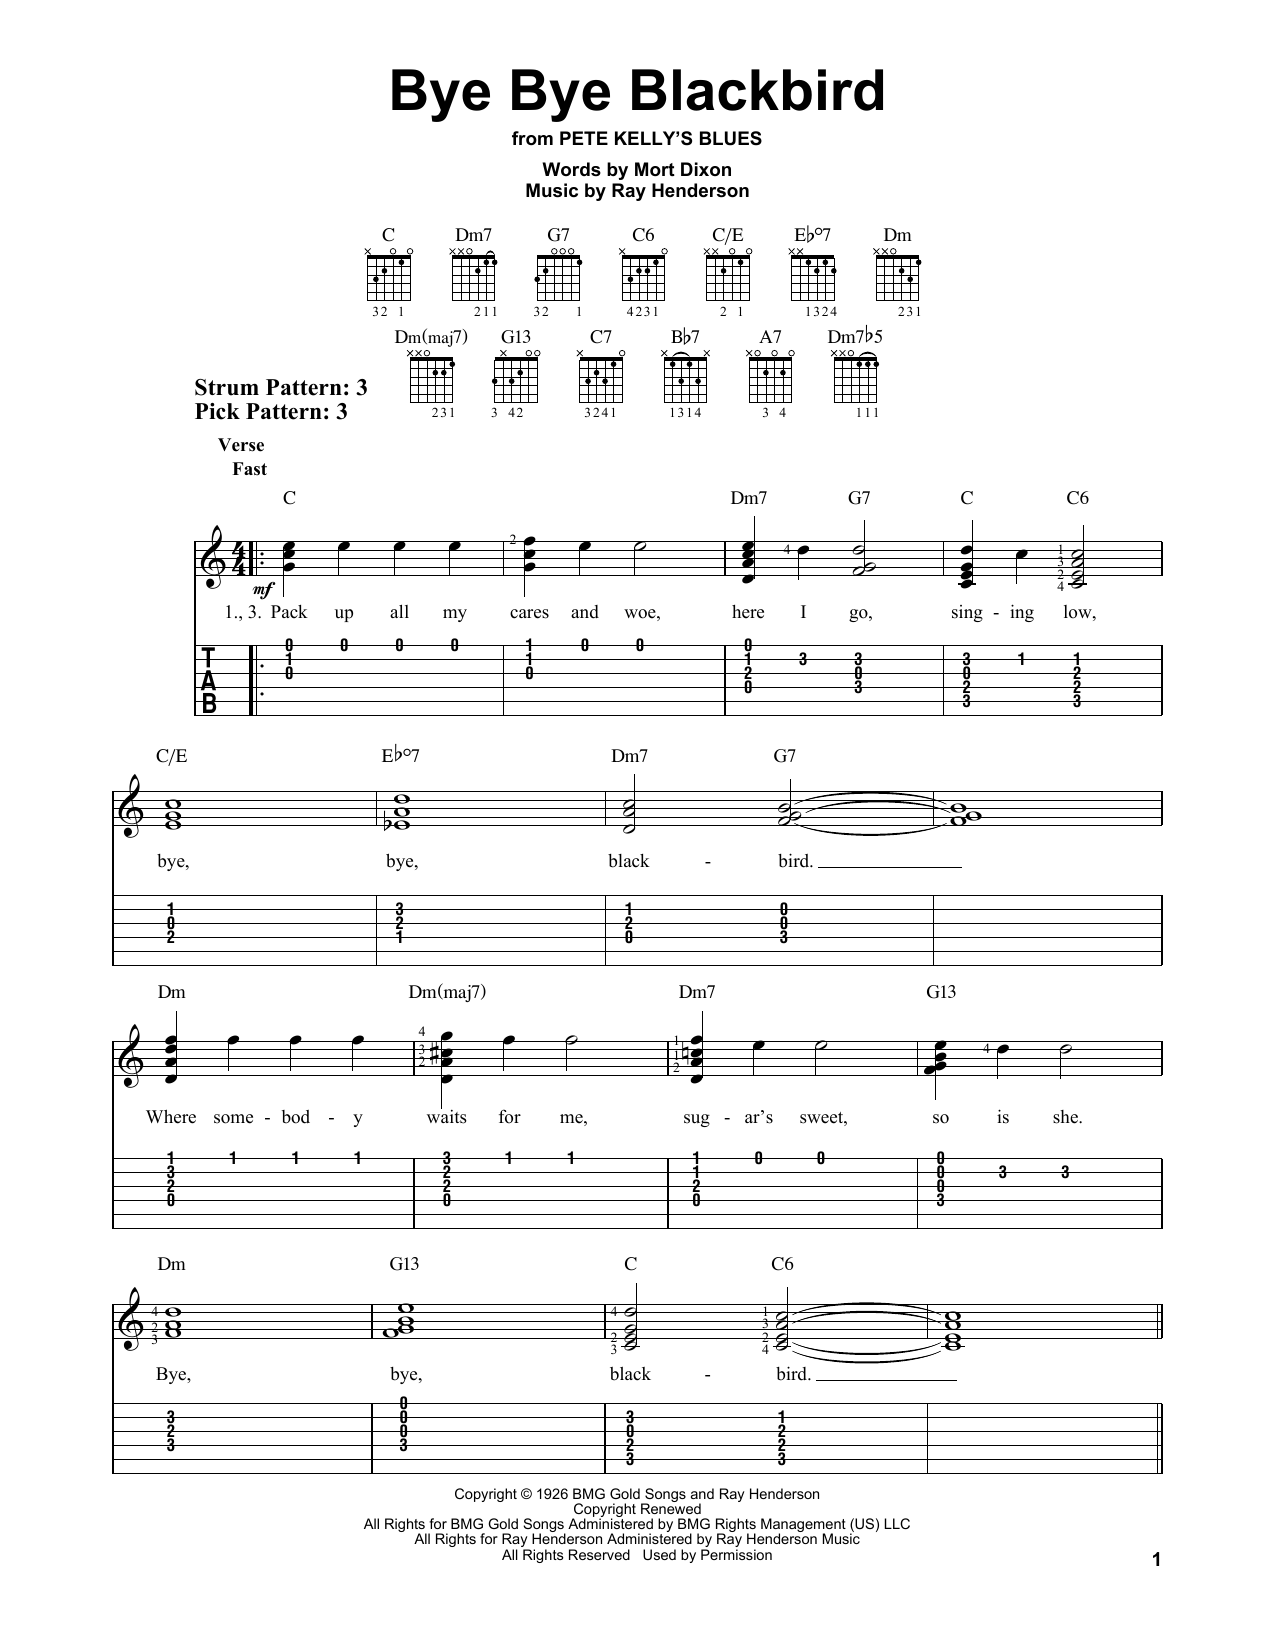 Bye bye blackbird by ray henderson easy guitar tab guitar the most accurate tab hexwebz Images